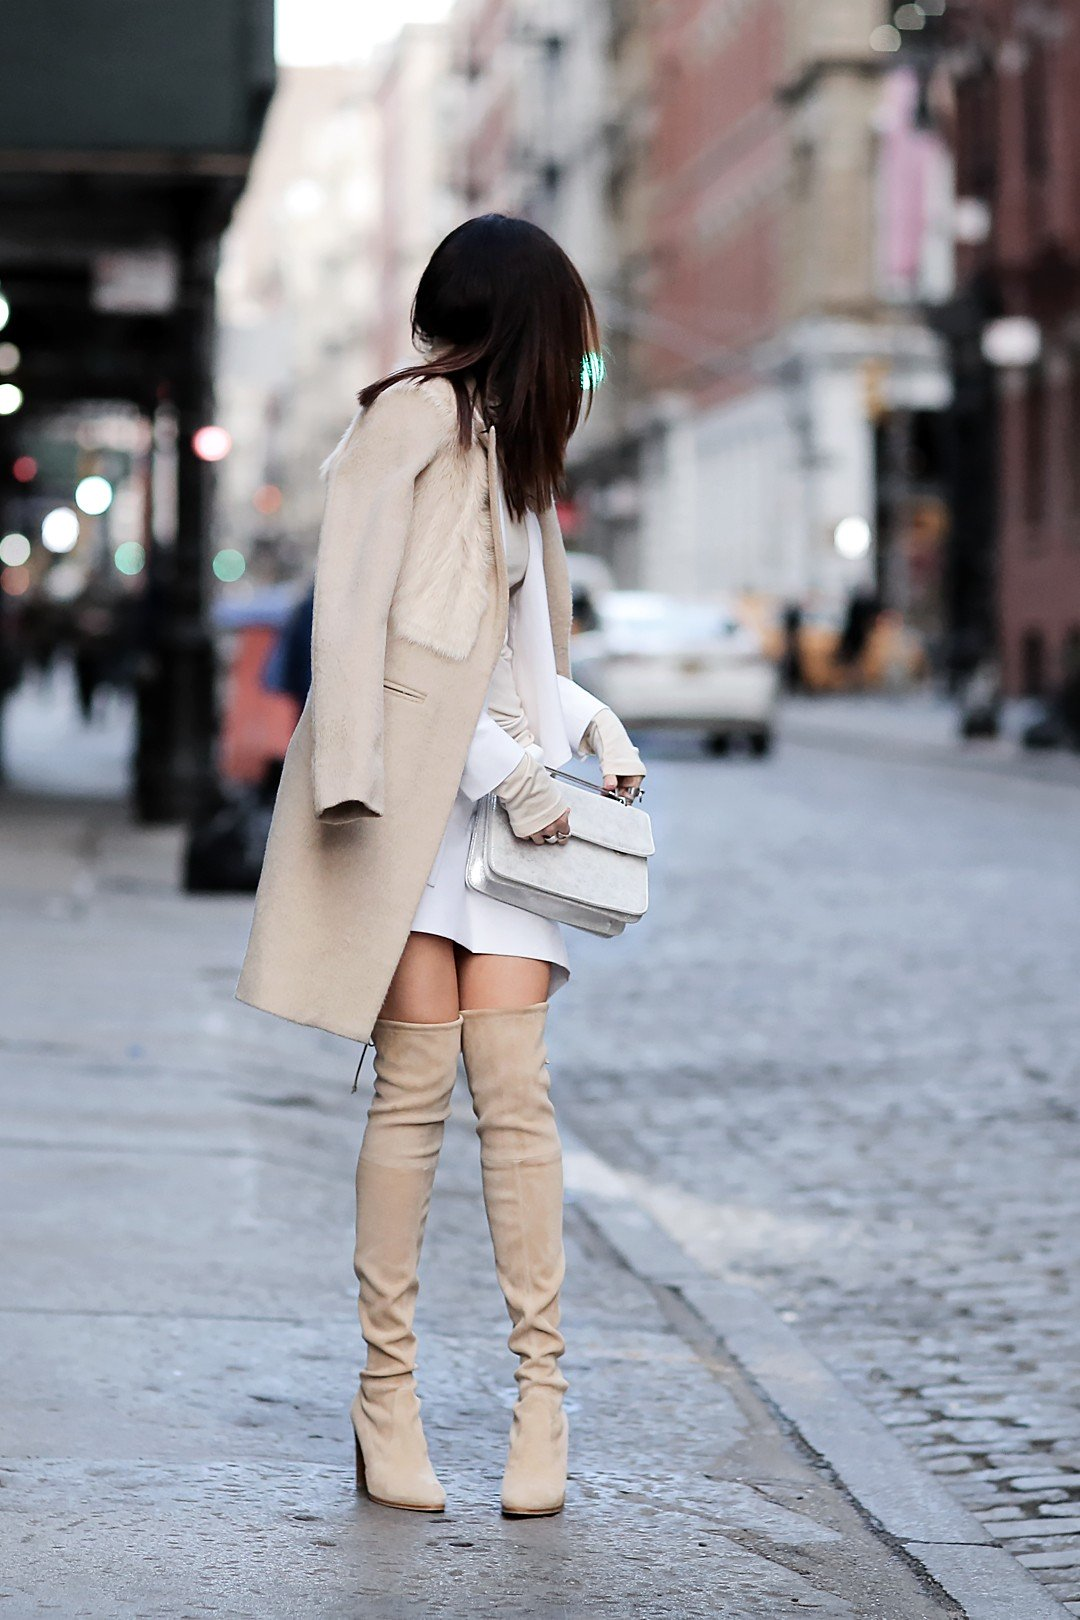 Who said thigh high boots couldn't be in neutral shades? Erica Hoida looks fabulous in these pastel cream coloured boots, worn with a matching overcoat and fur collar. Coat: Mason, Blazer: Marissa Webb, Shirt: Rachel Pally, Skirt: Marissa Webb Boots: Stuart Weitzman, Bag: M2Malletier.